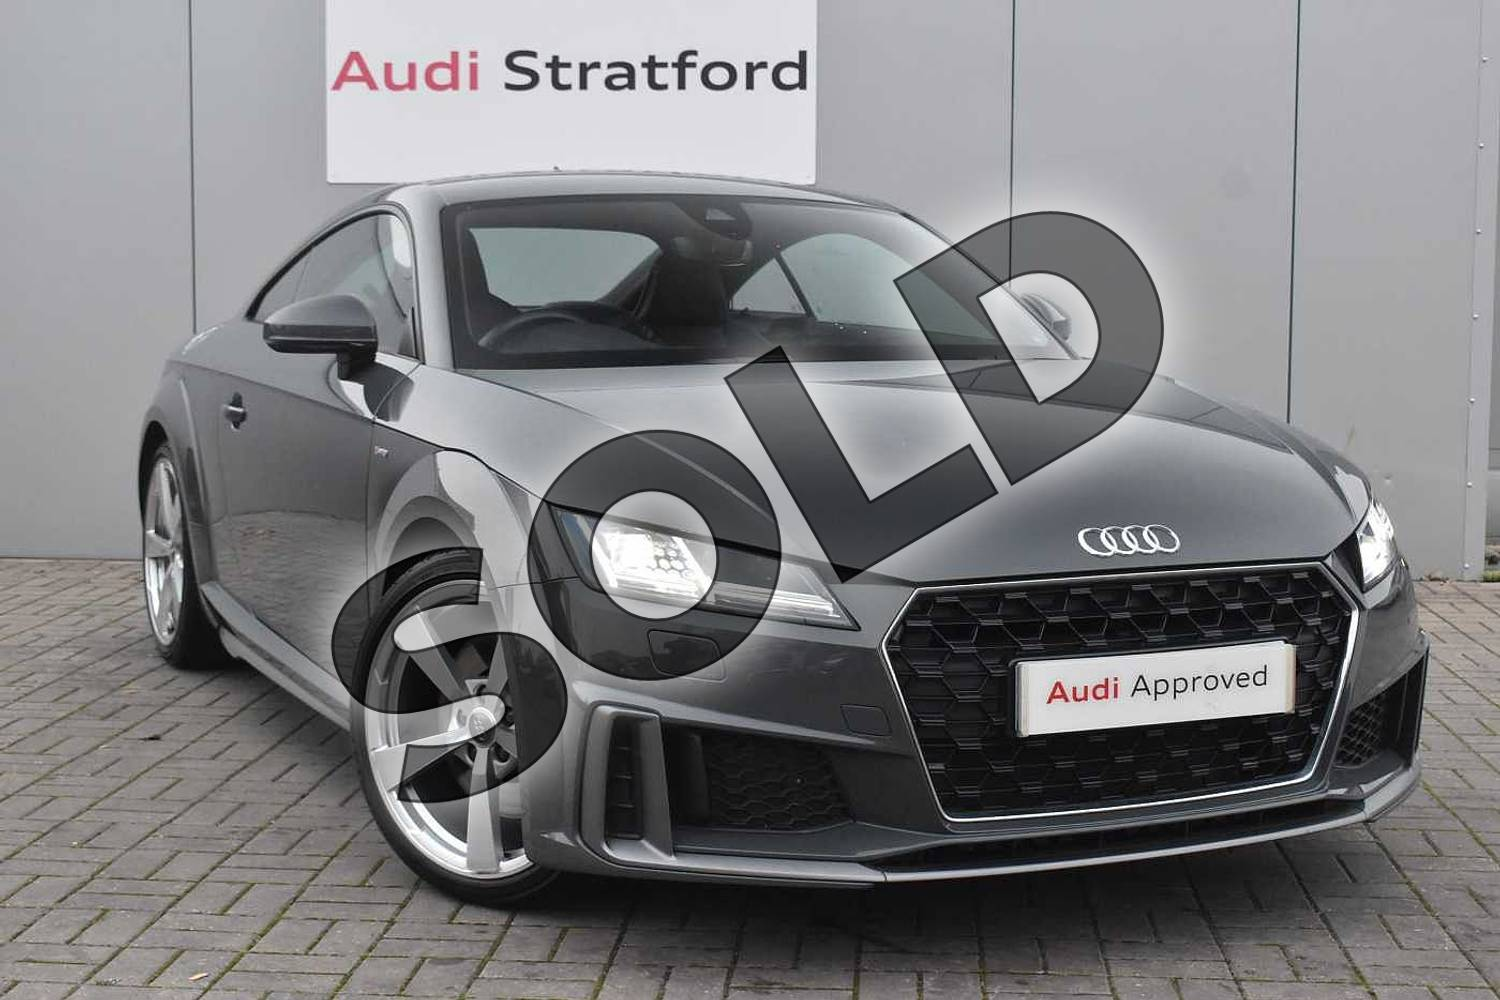 2019 Audi TT Coupe 45 TFSI S Line 2dr S Tronic in Nano Grey Metallic at Birmingham Audi